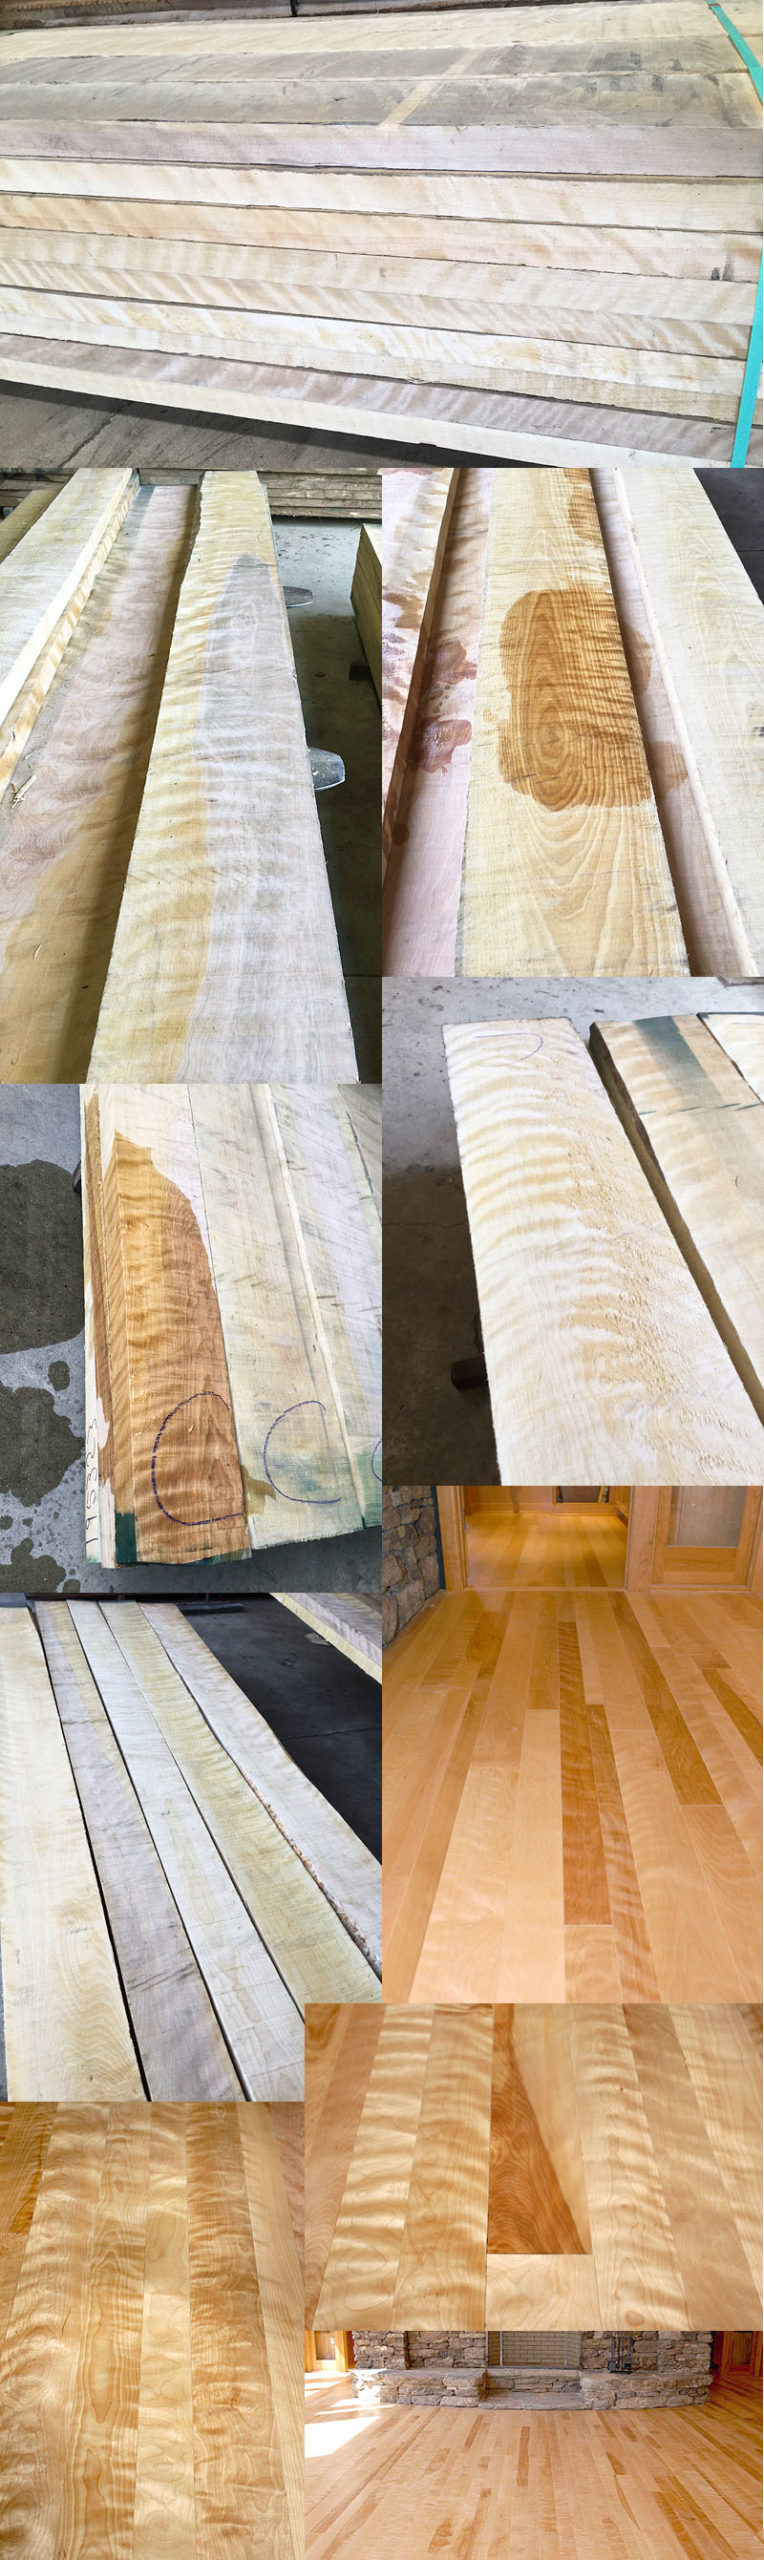 birch wood sample pictures